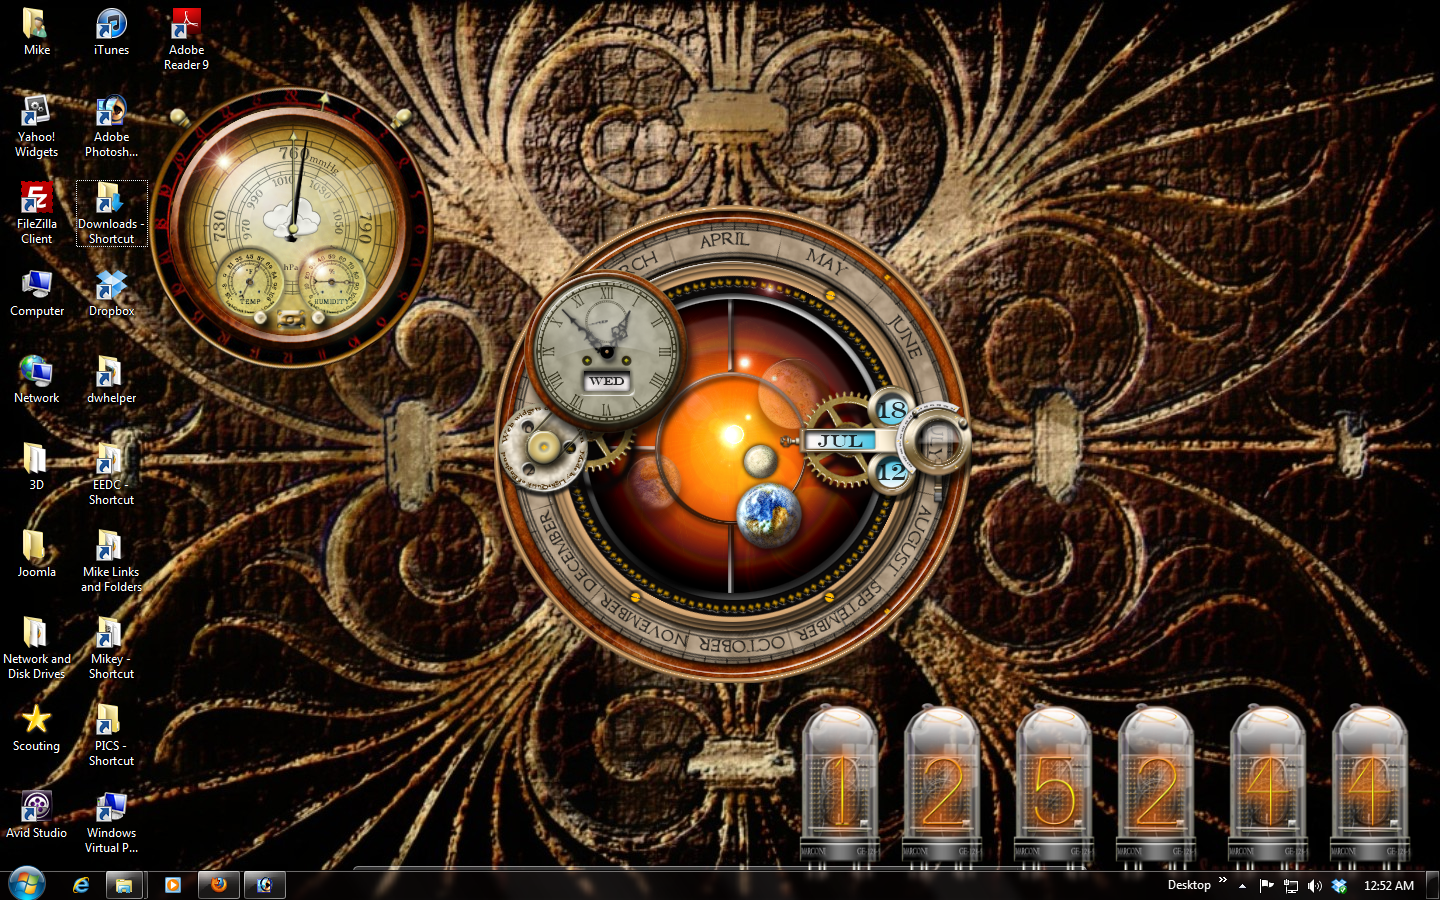 my new steampunk desktop this is a screen grab of my new steampunk 1440x900